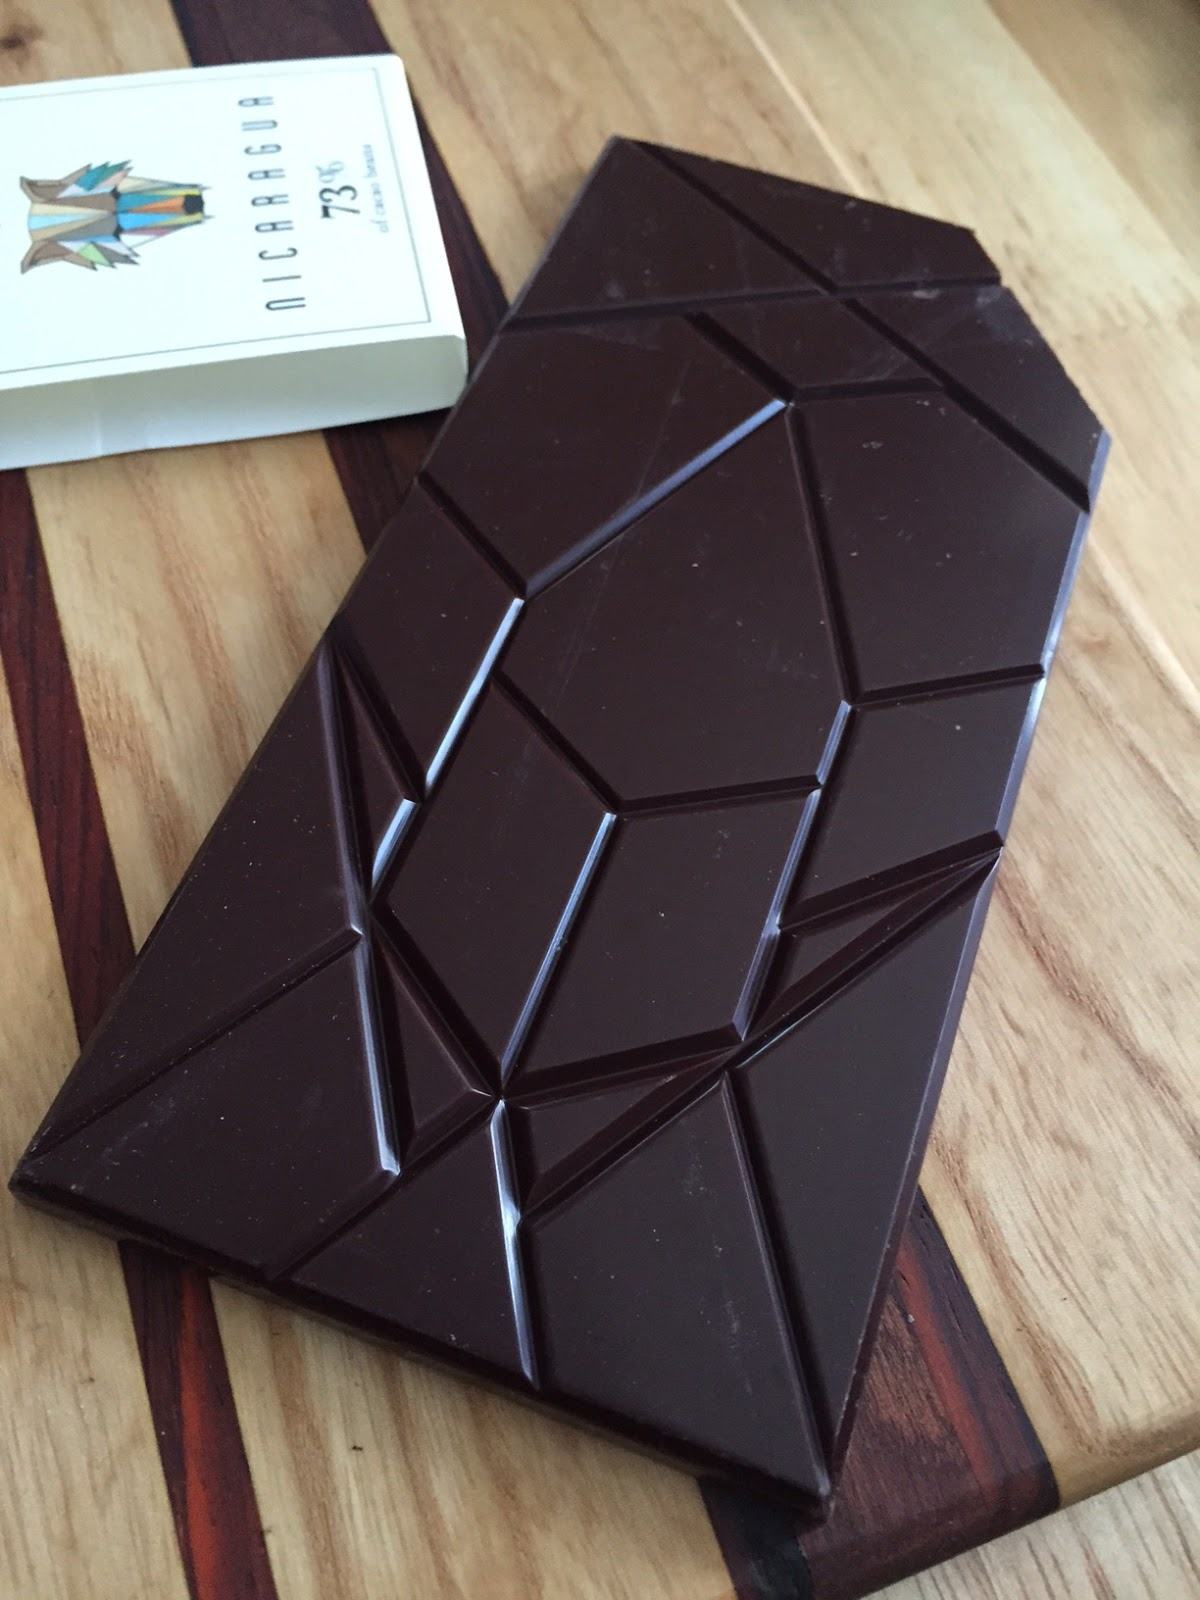 The Ultimate Chocolate Blog: The Chocolate Project: A Great